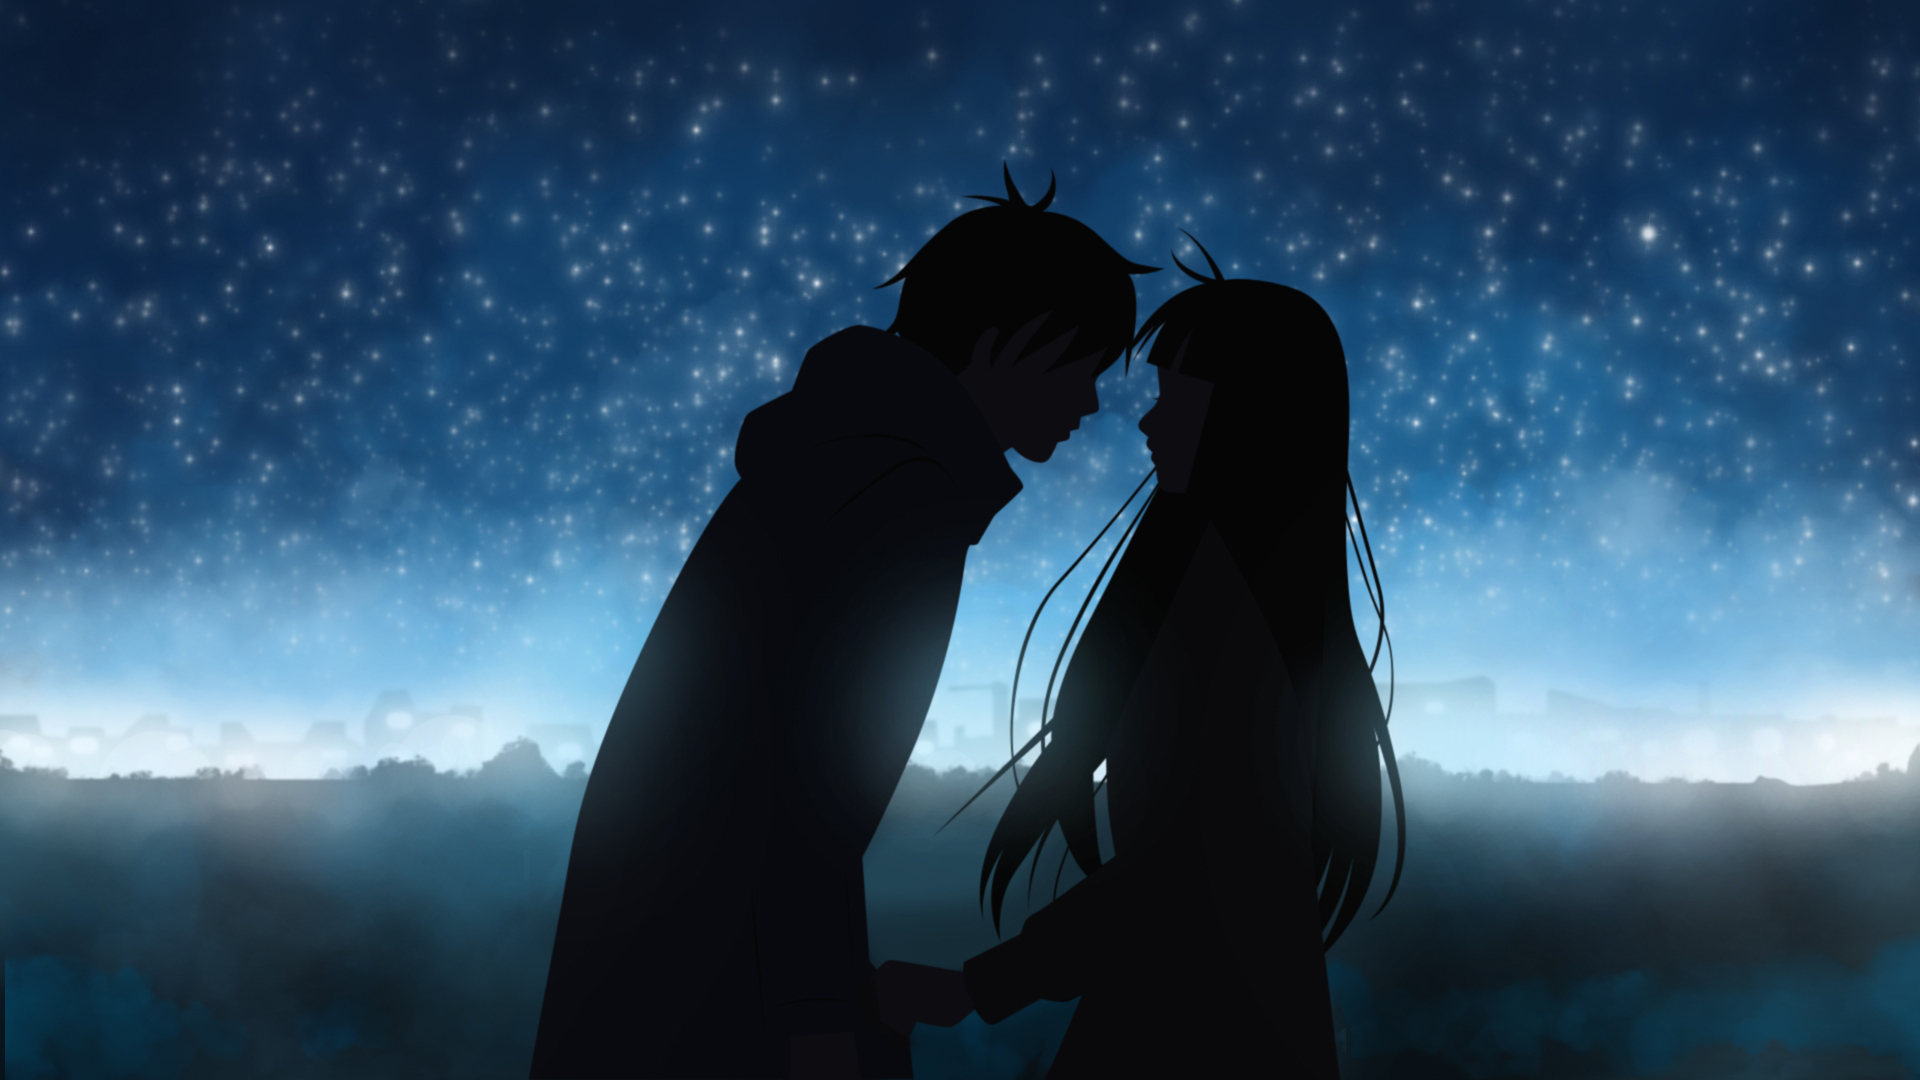 Romantic Anime Hd Wallpaper Loves #23748 Wallpaper | High